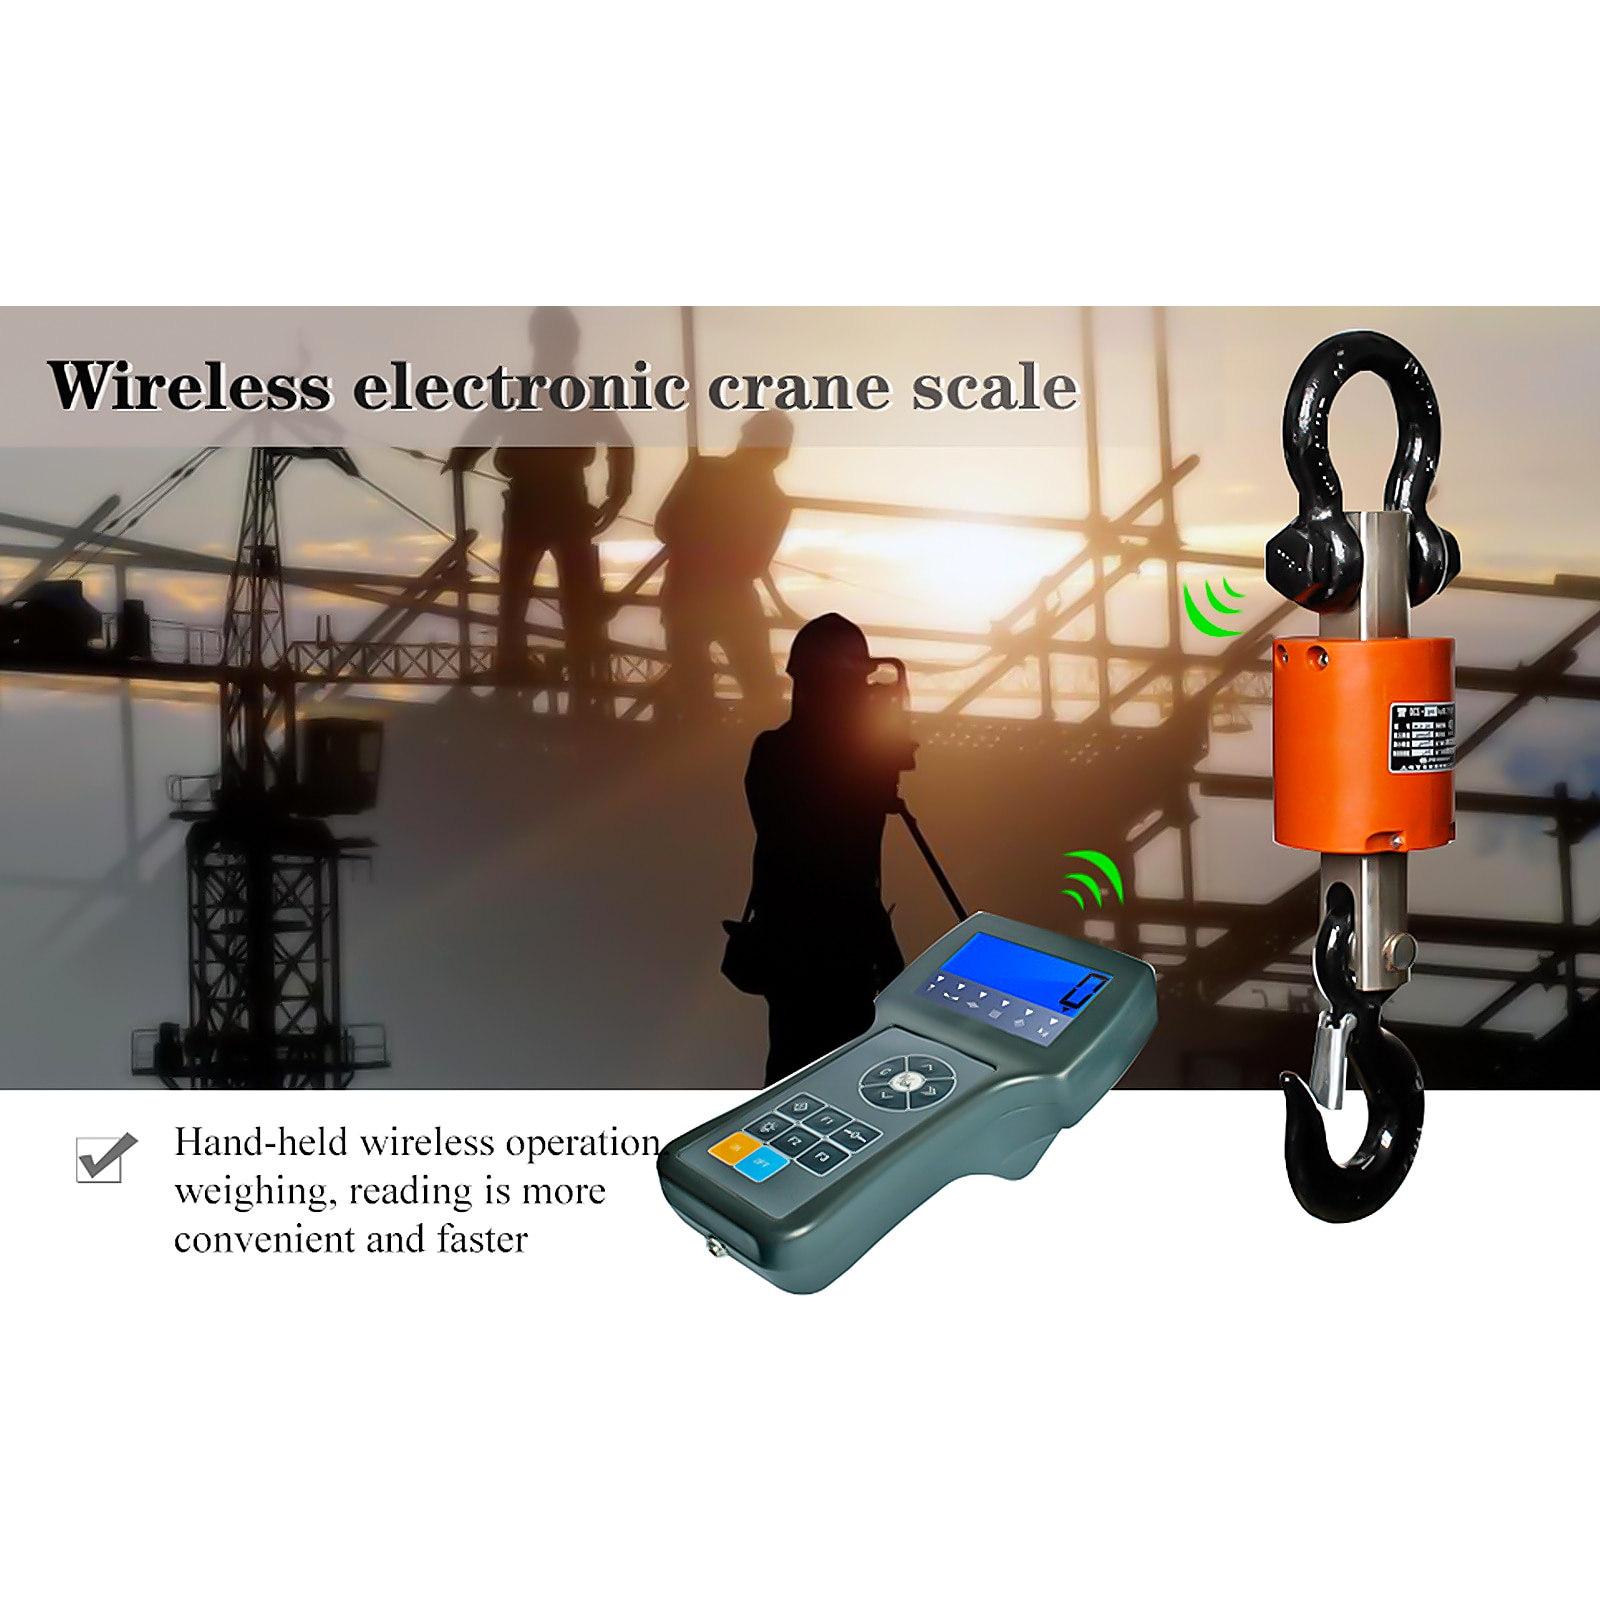 Factory direct sales 3t5T10 tons warranty for one year cylindrical wireless hook scale handheld instrument lifting scale enlarge